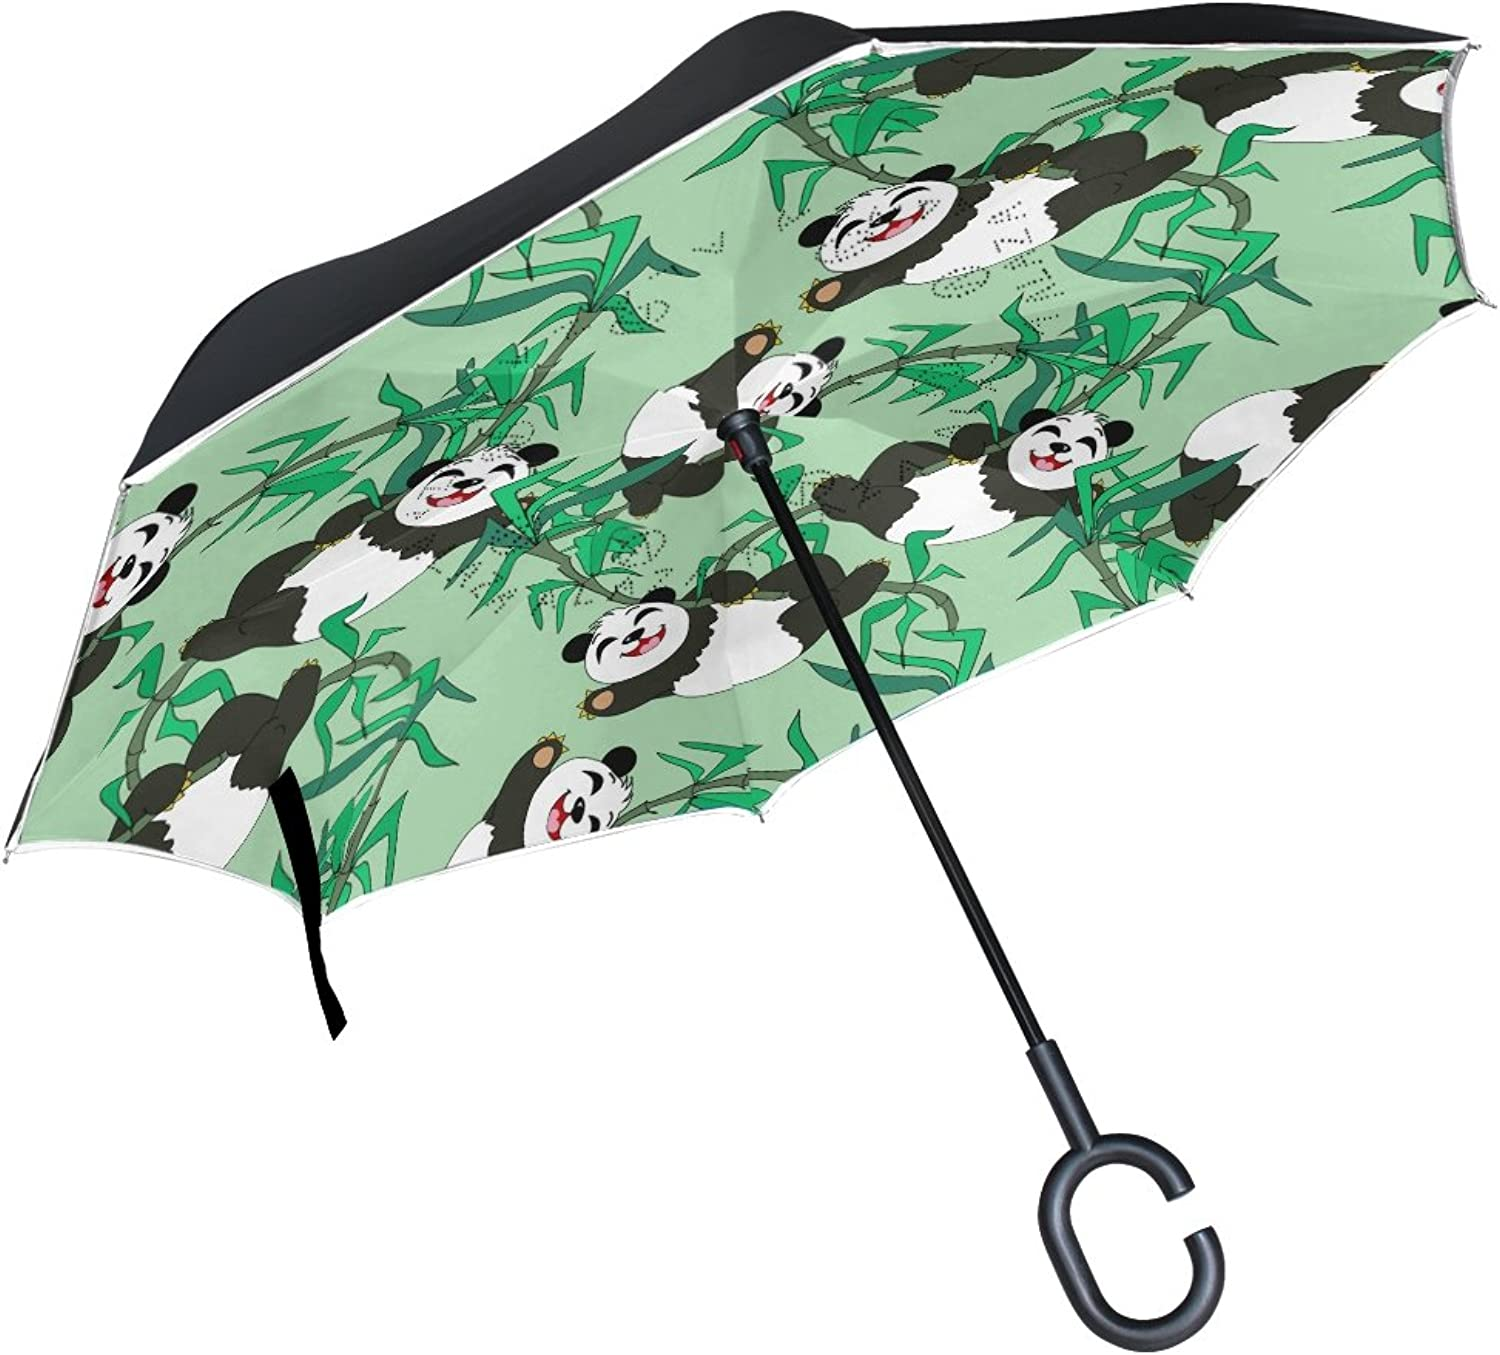 MAPOLO Cute Pandas Pattern Ingreened Double Layer Straight Umbrellas InsideOut Reversible Umbrella with CShaped Handle for Rain Sun Car Use